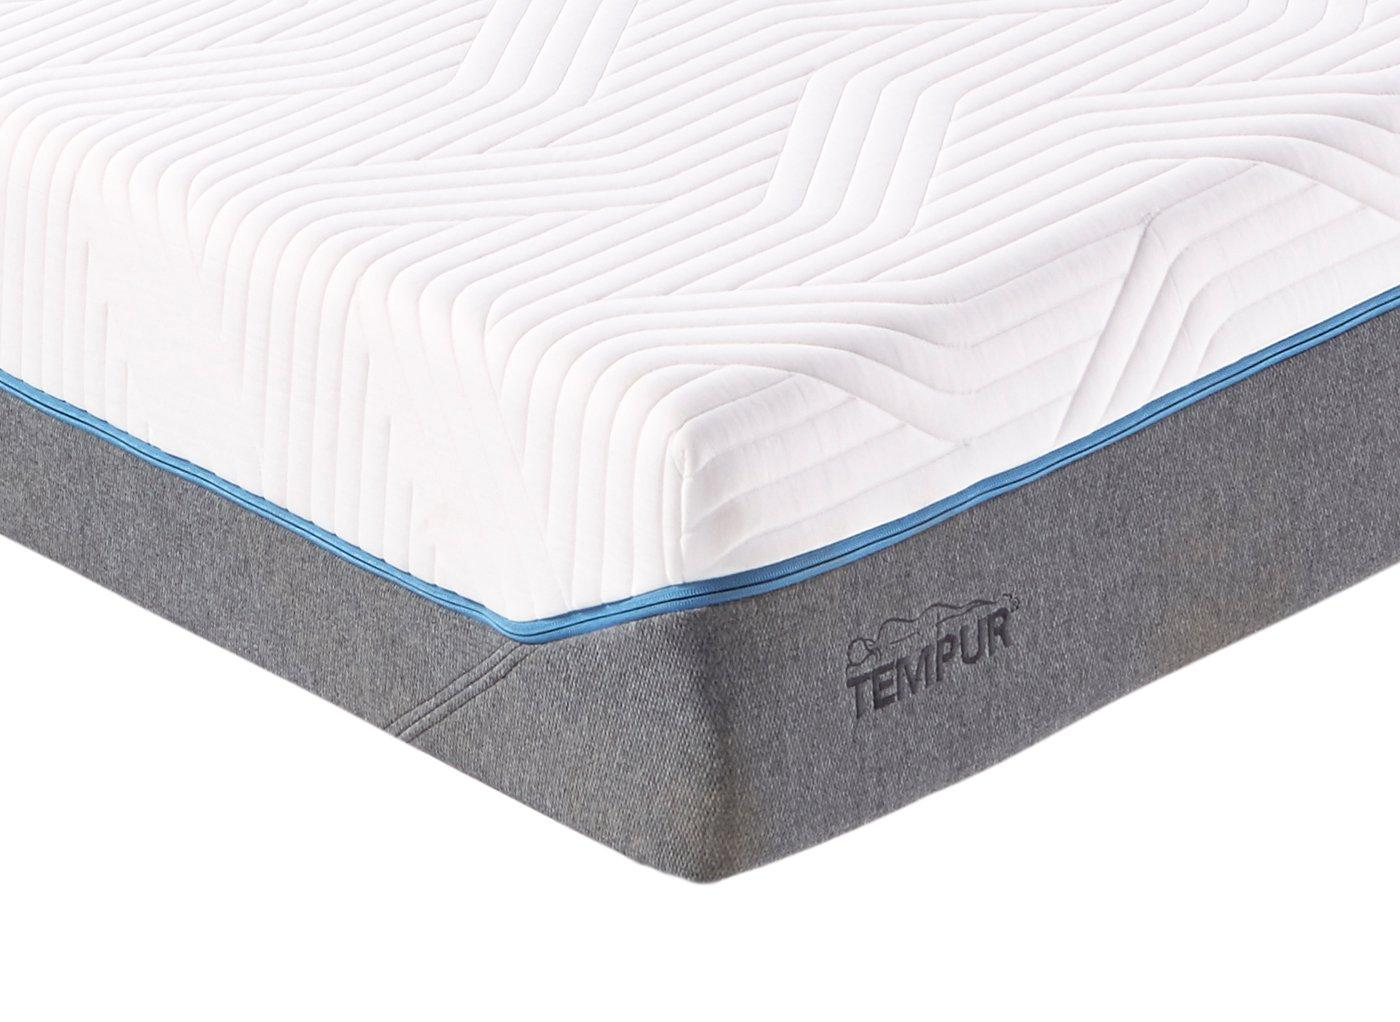 Tempur Cooltouch Cloud Elite Mattress - Medium 4'6 Double